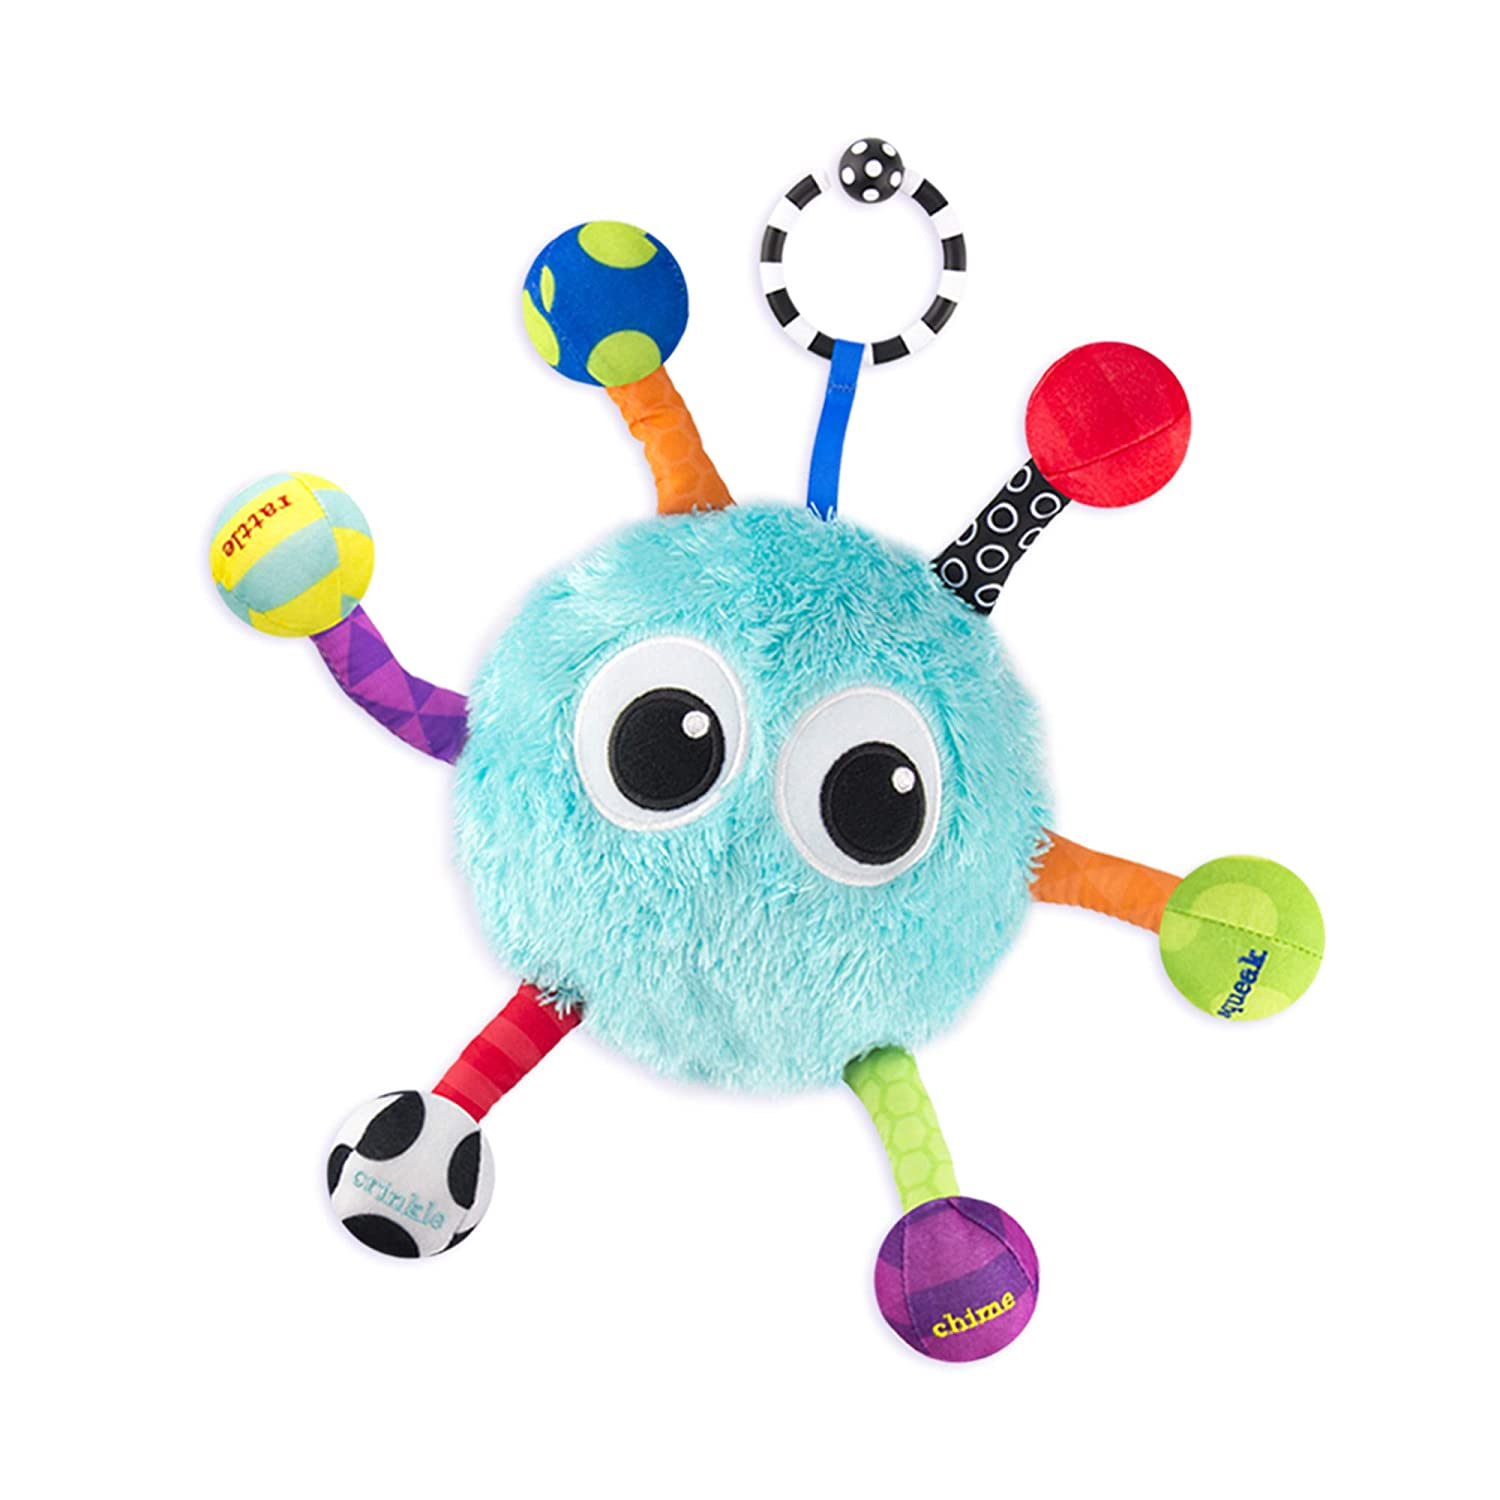 New Baby Soft Rattles Set On the Go Bugs Stroller Toy Child Kid Sassy